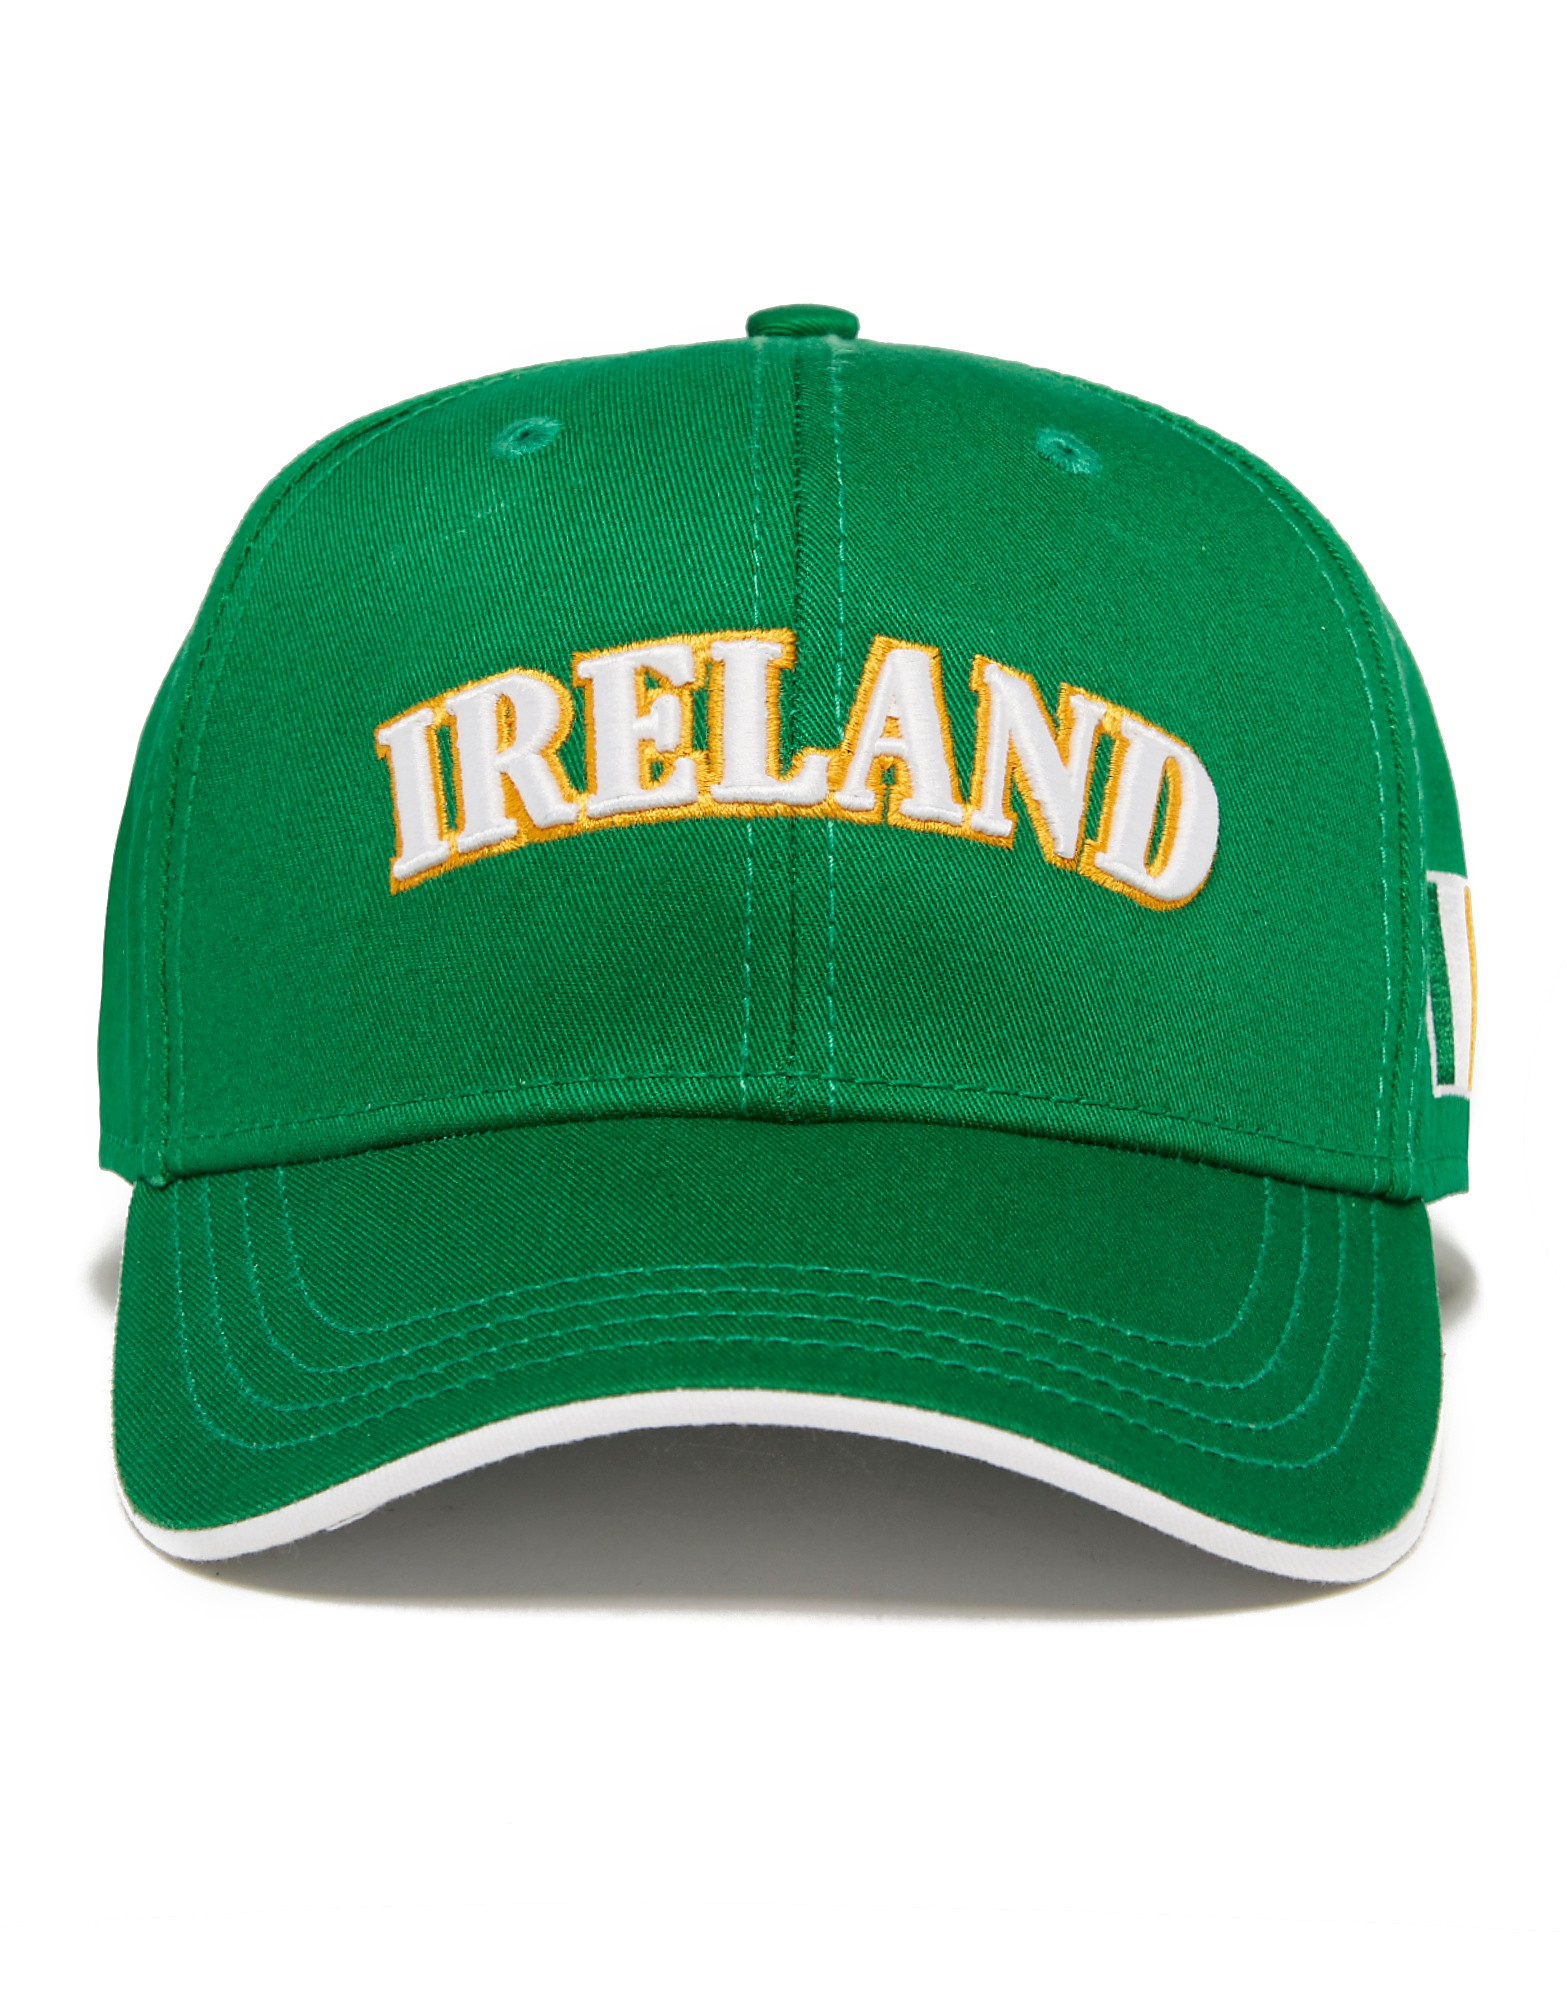 Official Team Irland Baseballkappe